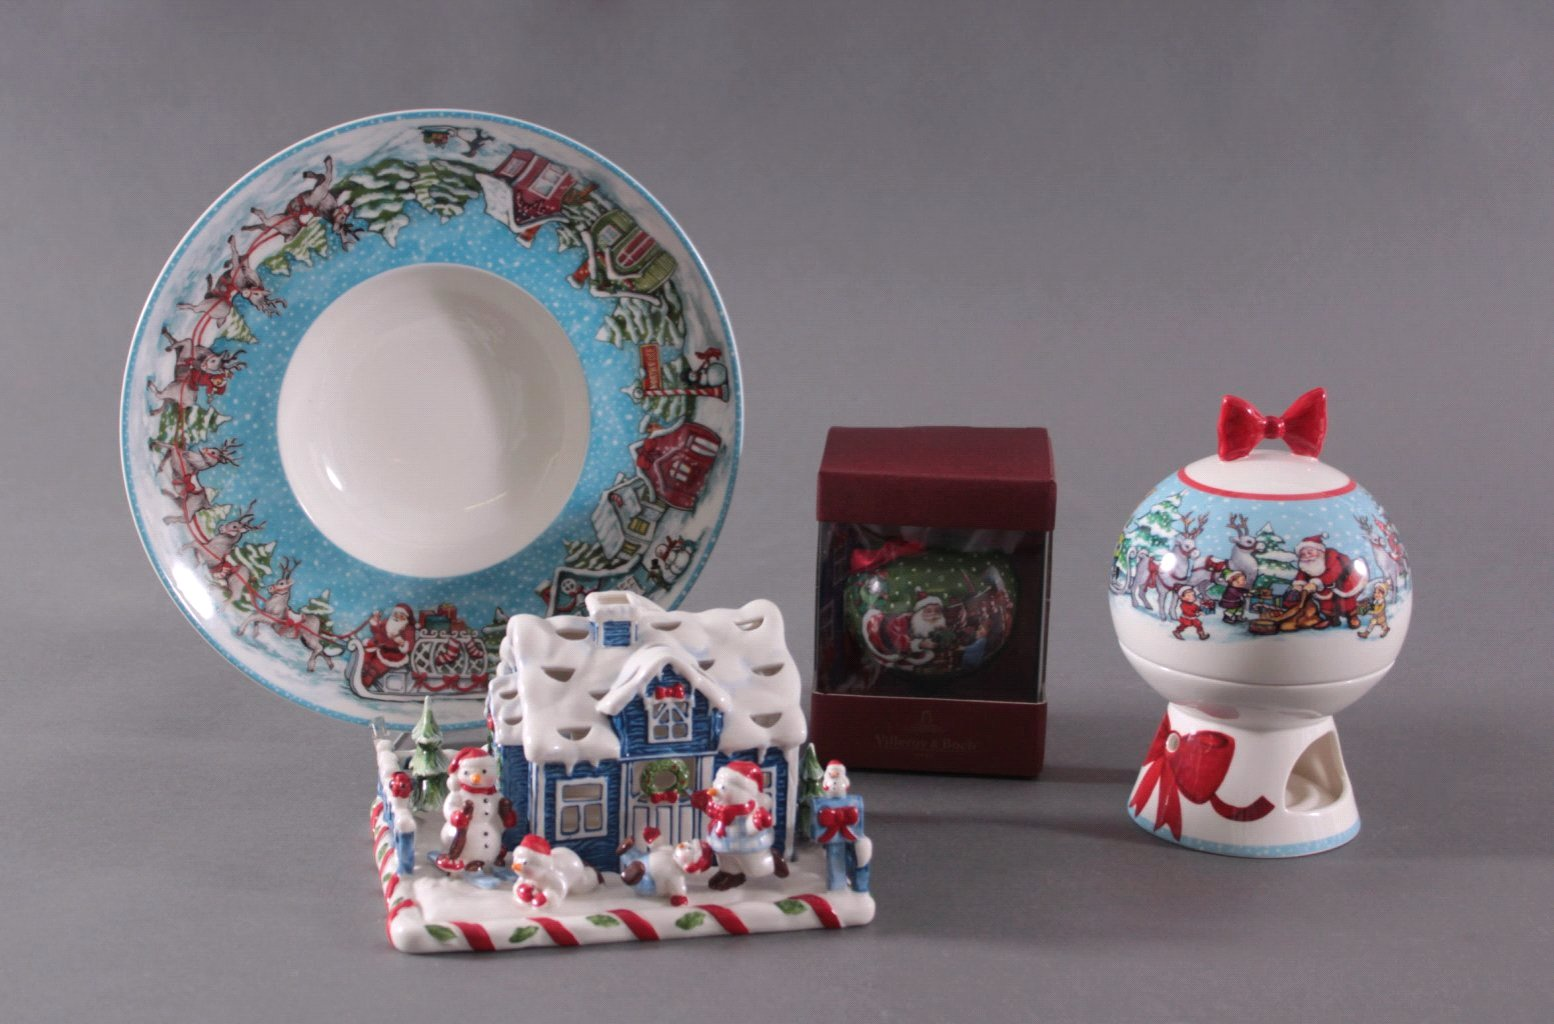 Villeroy & Boch, Weihnachtsaccessoires